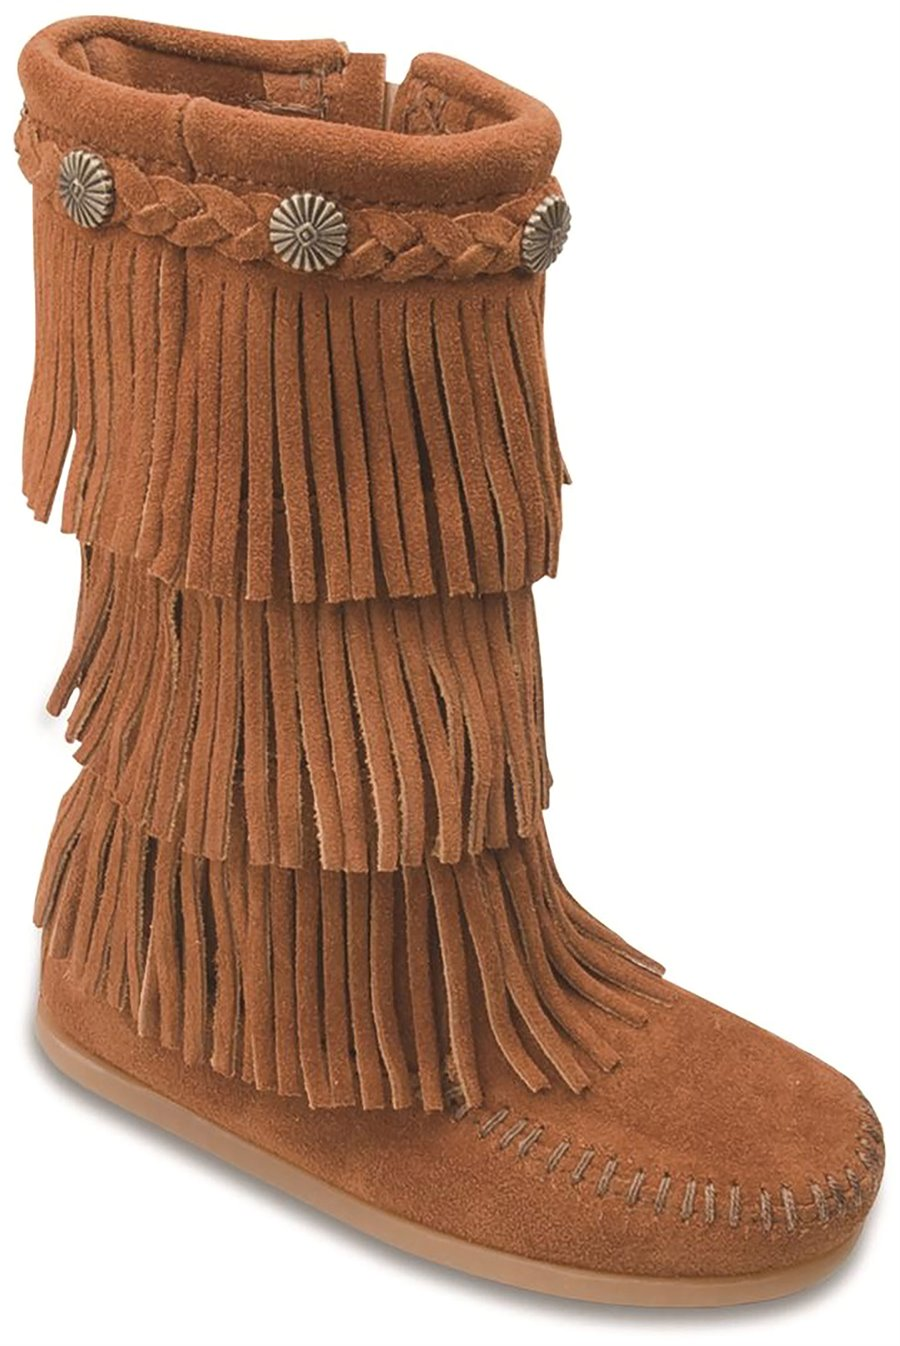 60s 70s Kids Costumes & Clothing Girls & Boys Minnetonka Childrens Shoes - 3 Layer Fringe Boot in Brown $73.95 AT vintagedancer.com